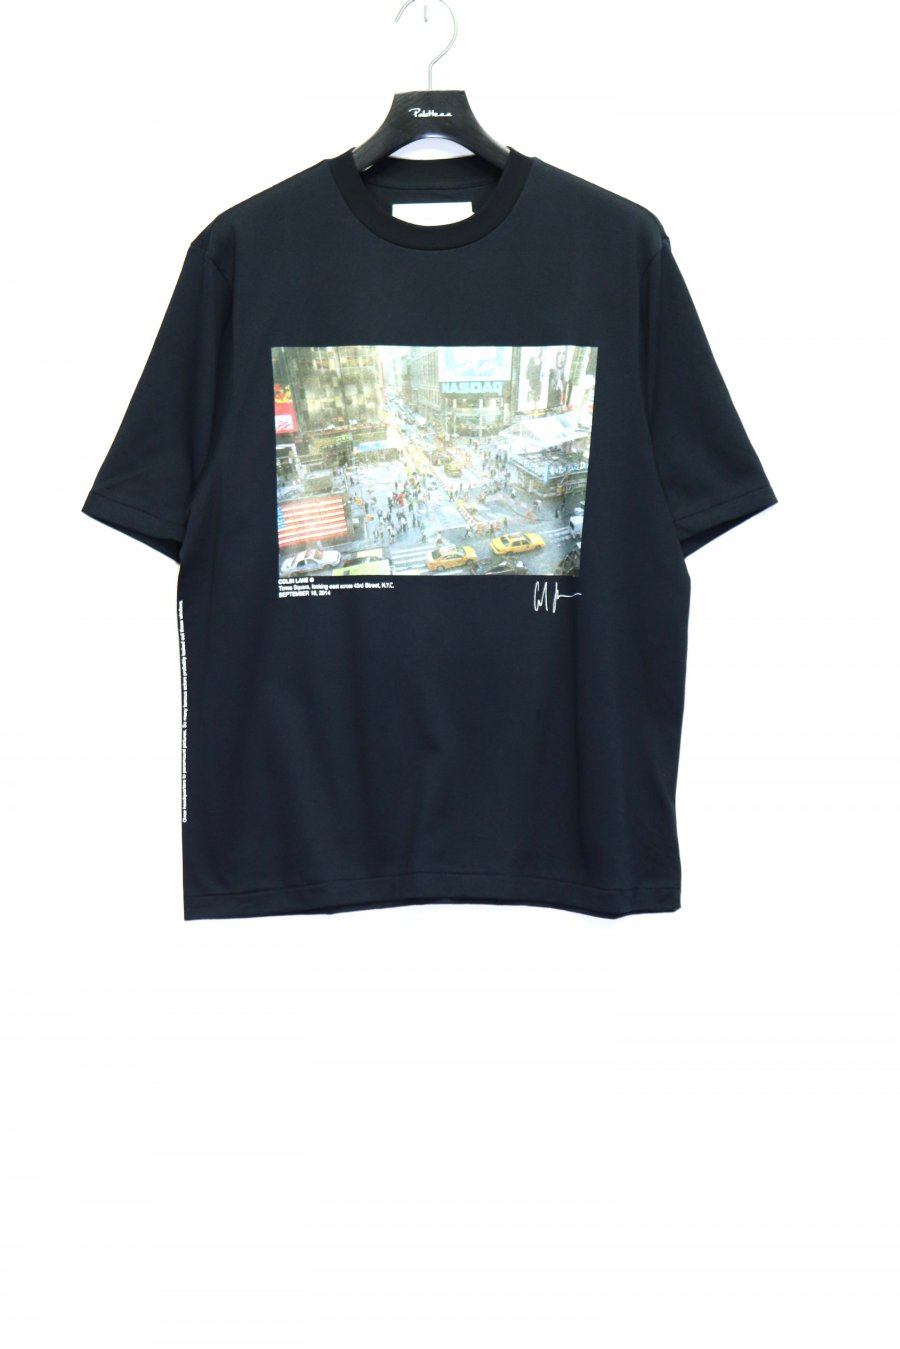 JOHN MASON SMITH × COLINE LANE TIMES SQUARE S/S T-SHIRT<img class='new_mark_img2' src='https://img.shop-pro.jp/img/new/icons15.gif' style='border:none;display:inline;margin:0px;padding:0px;width:auto;' />